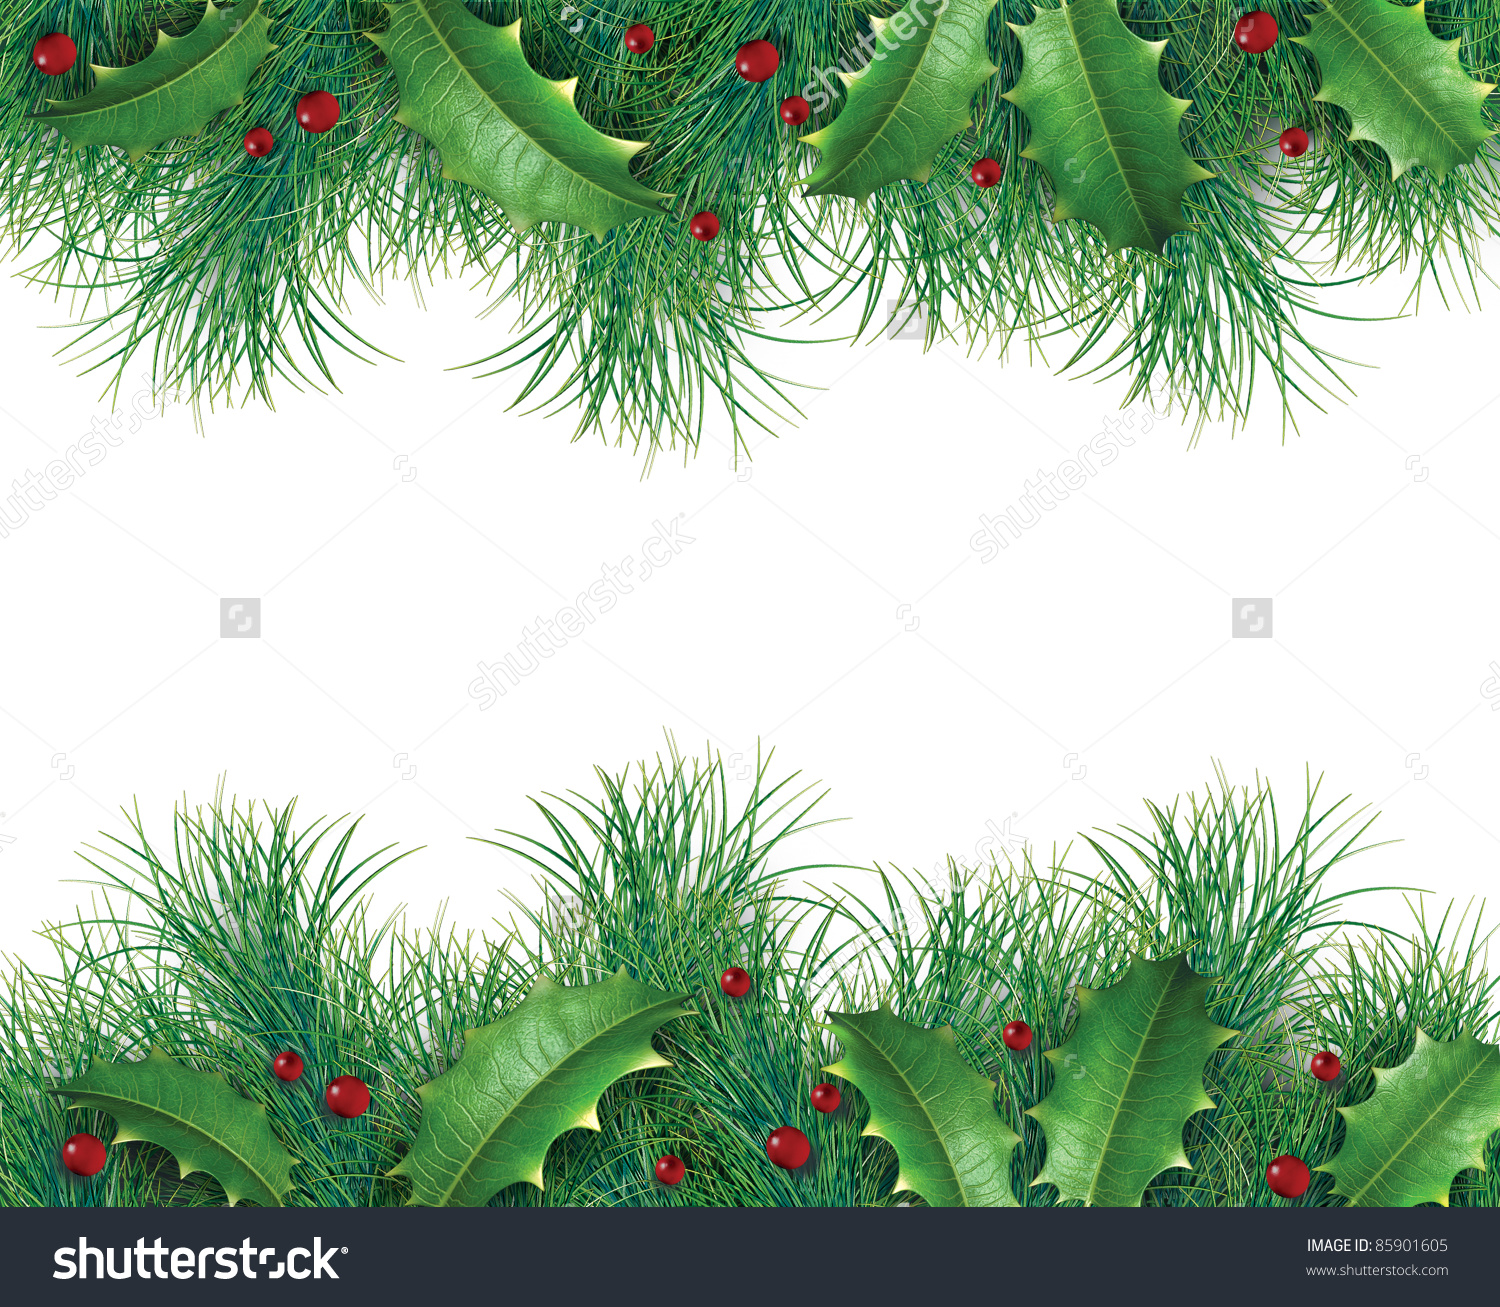 Evergreen border clipart PNG and cliparts for Free Download.